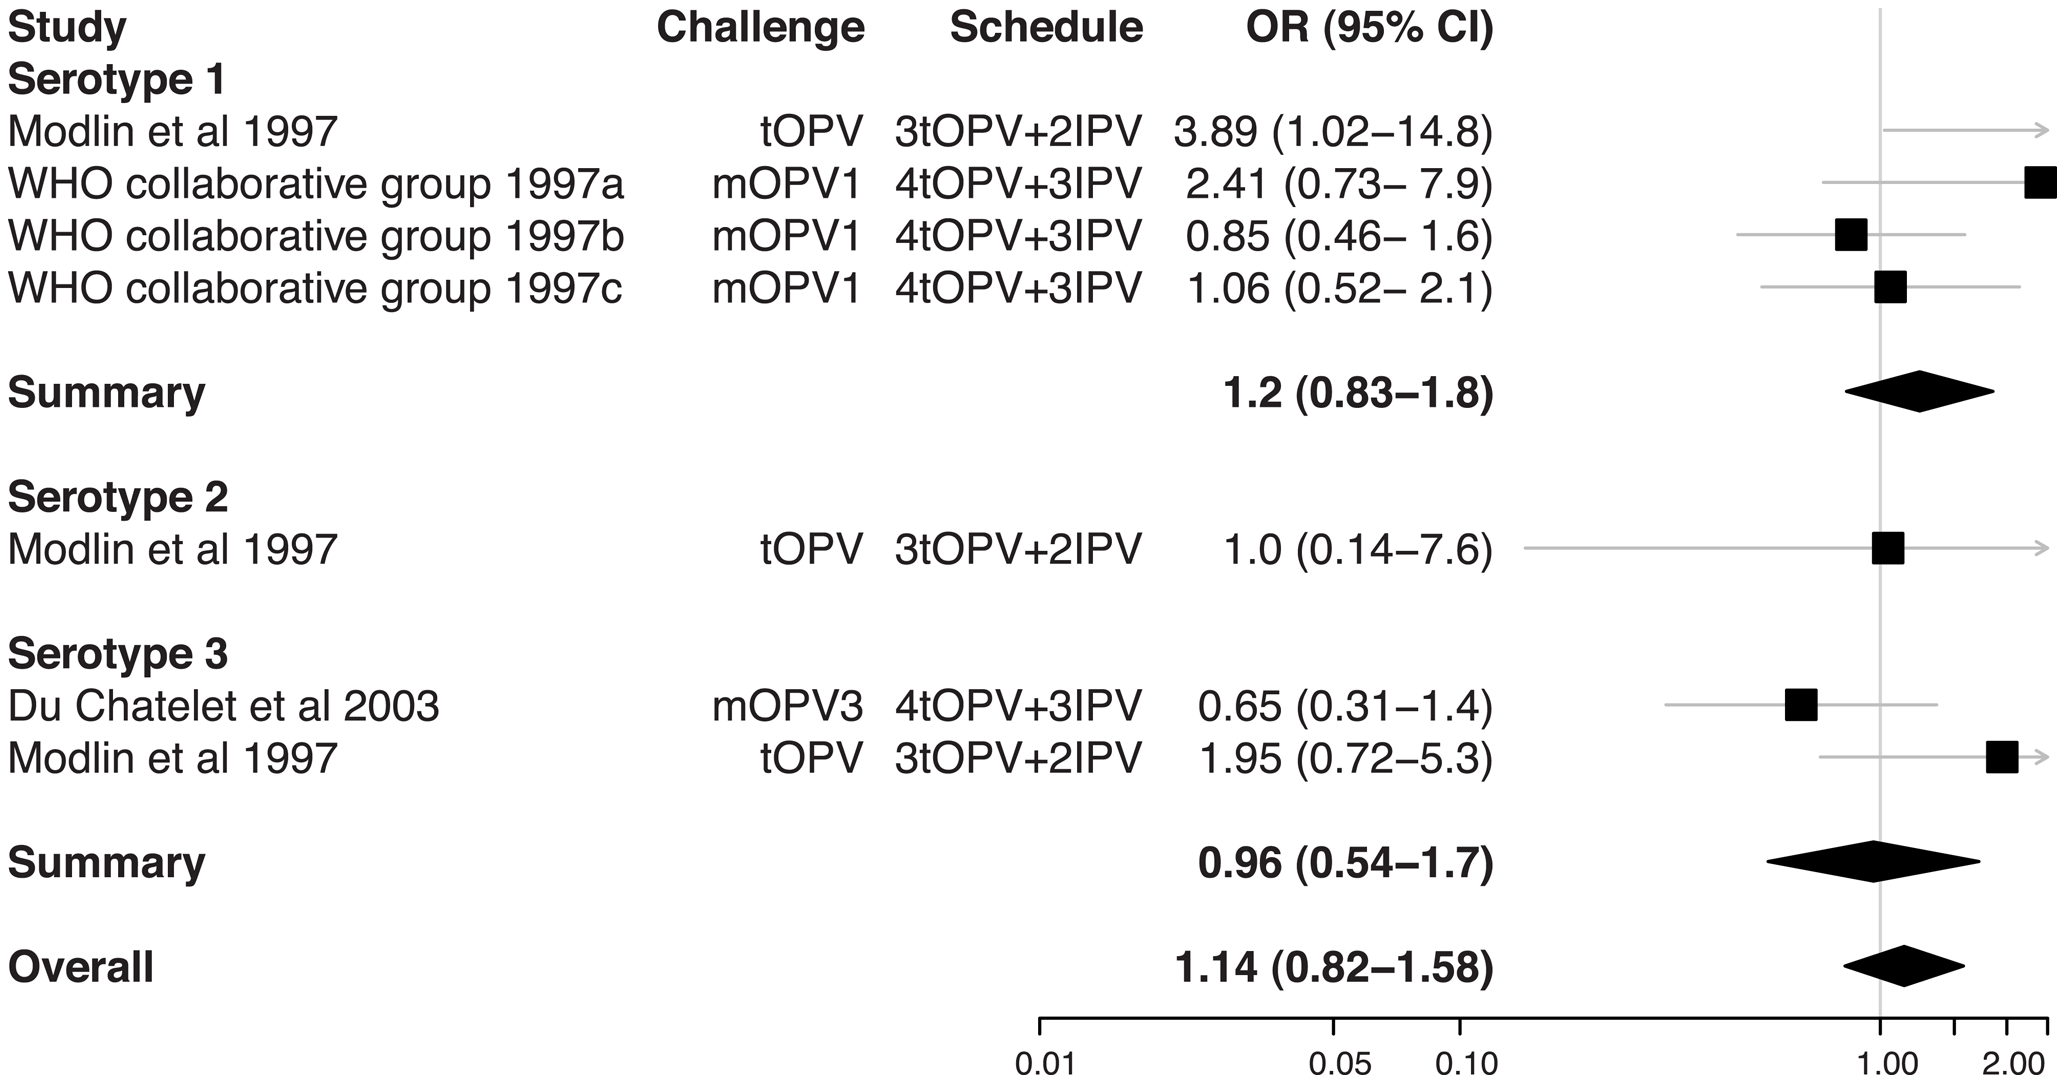 Relative odds of shedding vaccine poliovirus after challenge among individuals vaccinated with IPV in addition to OPV compared with individuals vaccinated with OPV only.